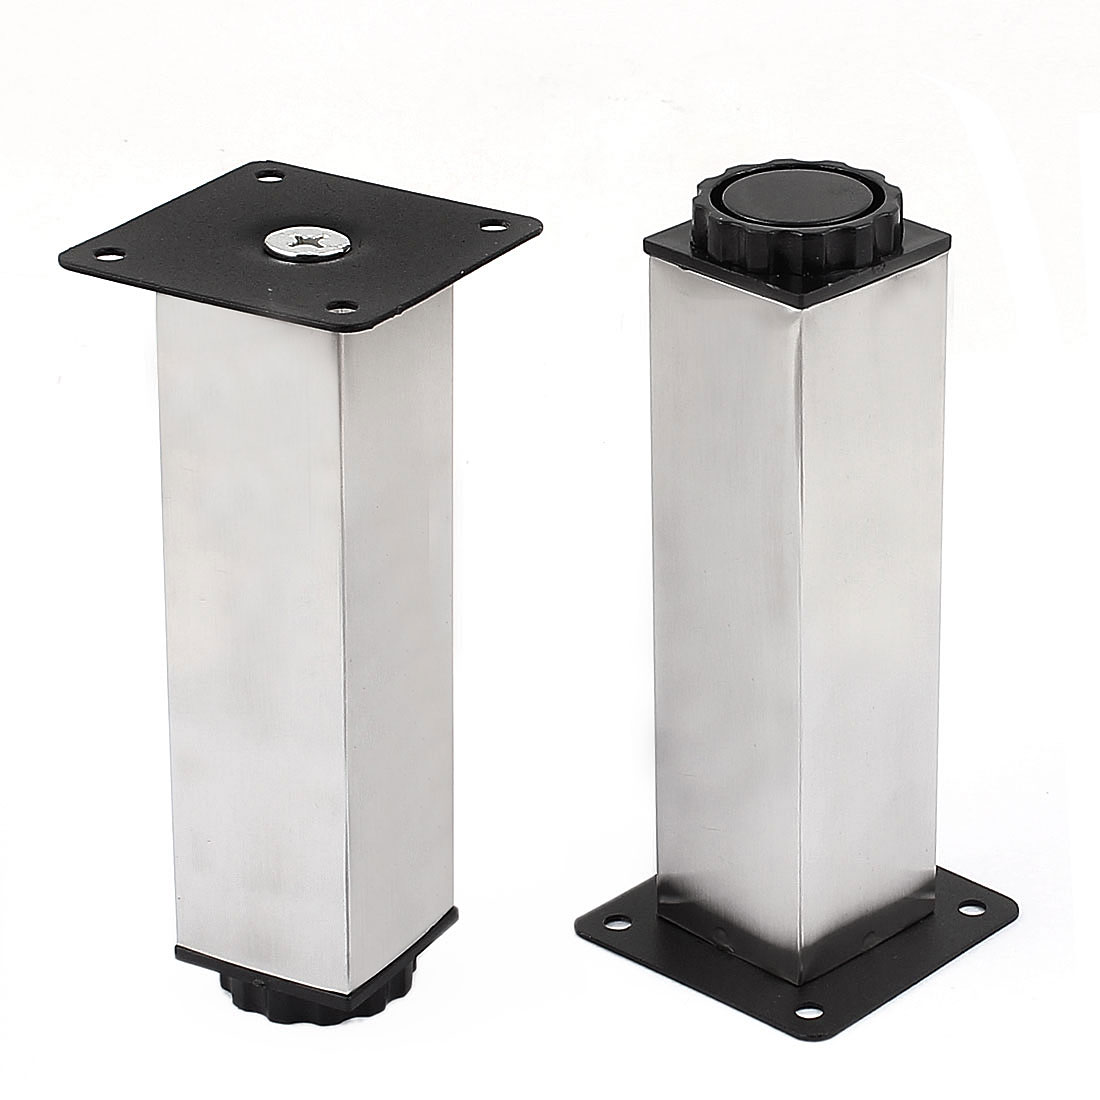 Kitchen Furniture 38mmx150mm Adjustable Cabinet Leg Plinth Feet 2pcs